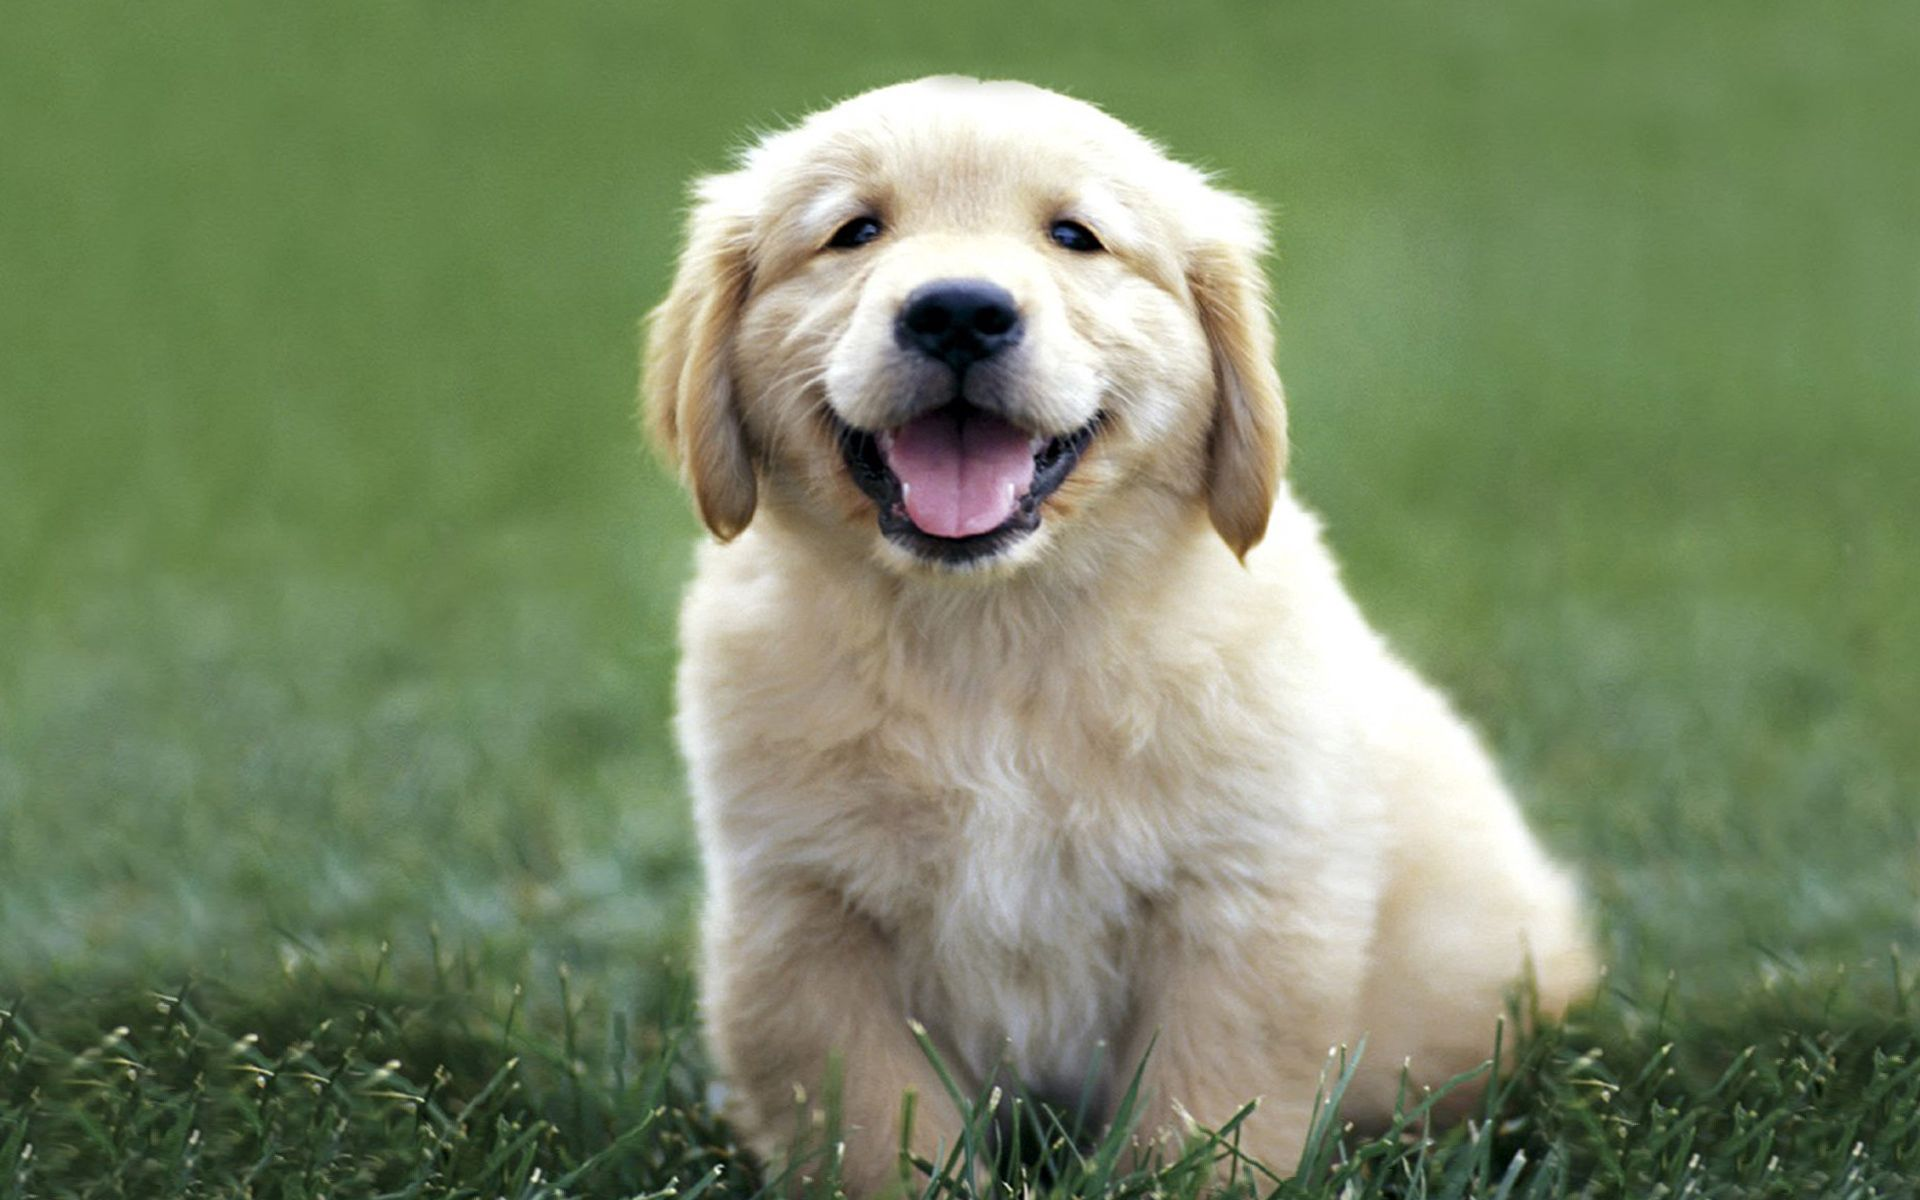 155788 download wallpaper Animals, Dog, Labrador, Color, Grass, Puppy screensavers and pictures for free